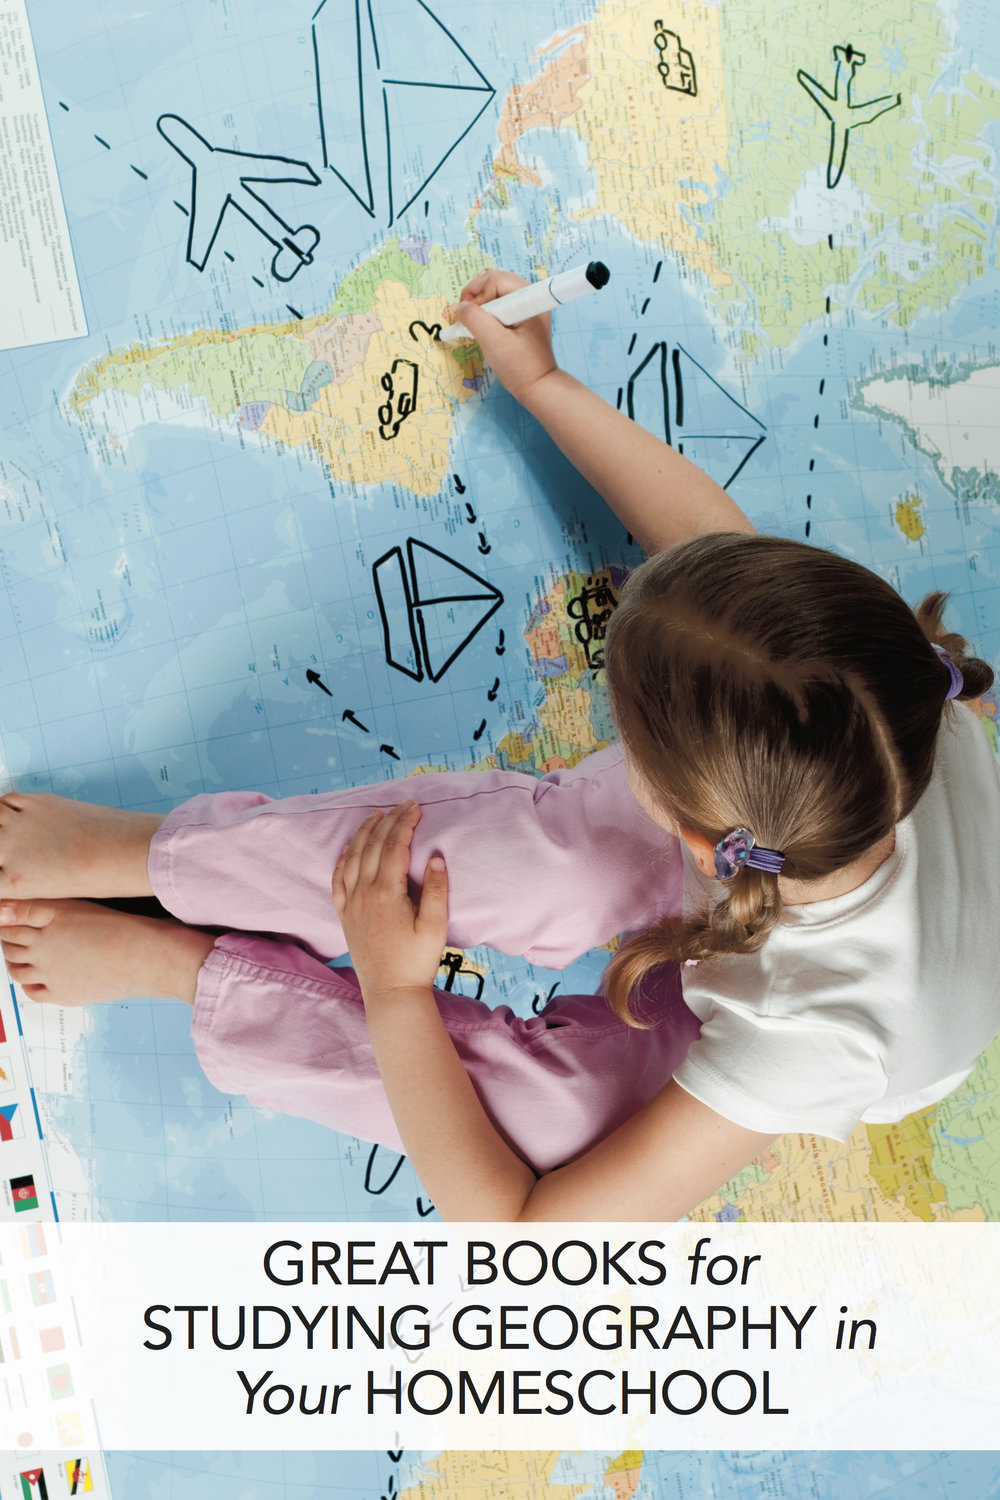 Great Books for Studying Geography in Your Homeschool